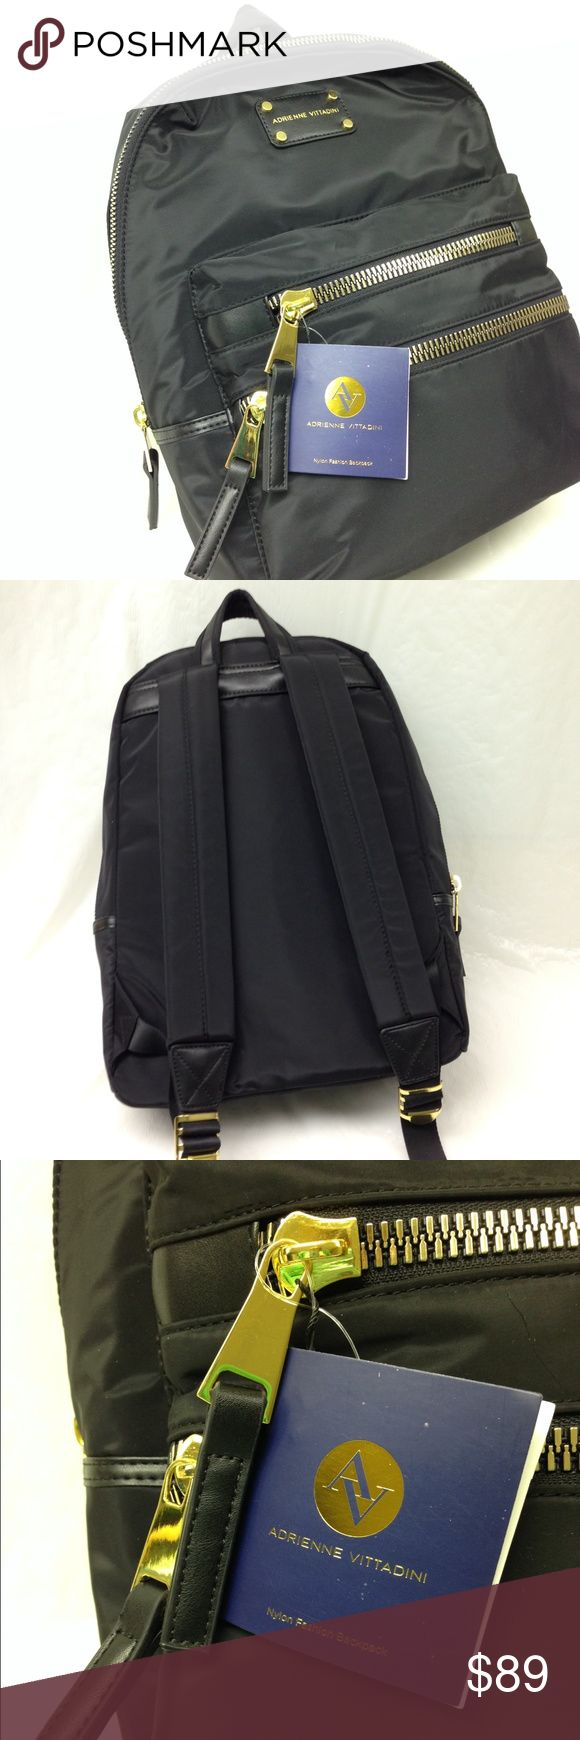 💜SALE💜 Adrienne Vittadini Black Nylon Backpack Adrienne Vittadini black nylon backpack with gold tone zippers and accents/hardware. Maroon cloth interior with 2 open pockets and one zipper pocket. Approx 16 x 12 x 7 Fabulous backpack! NWT new with tags! Retail price $198. Adrienne Vittadini Bags Backpacks